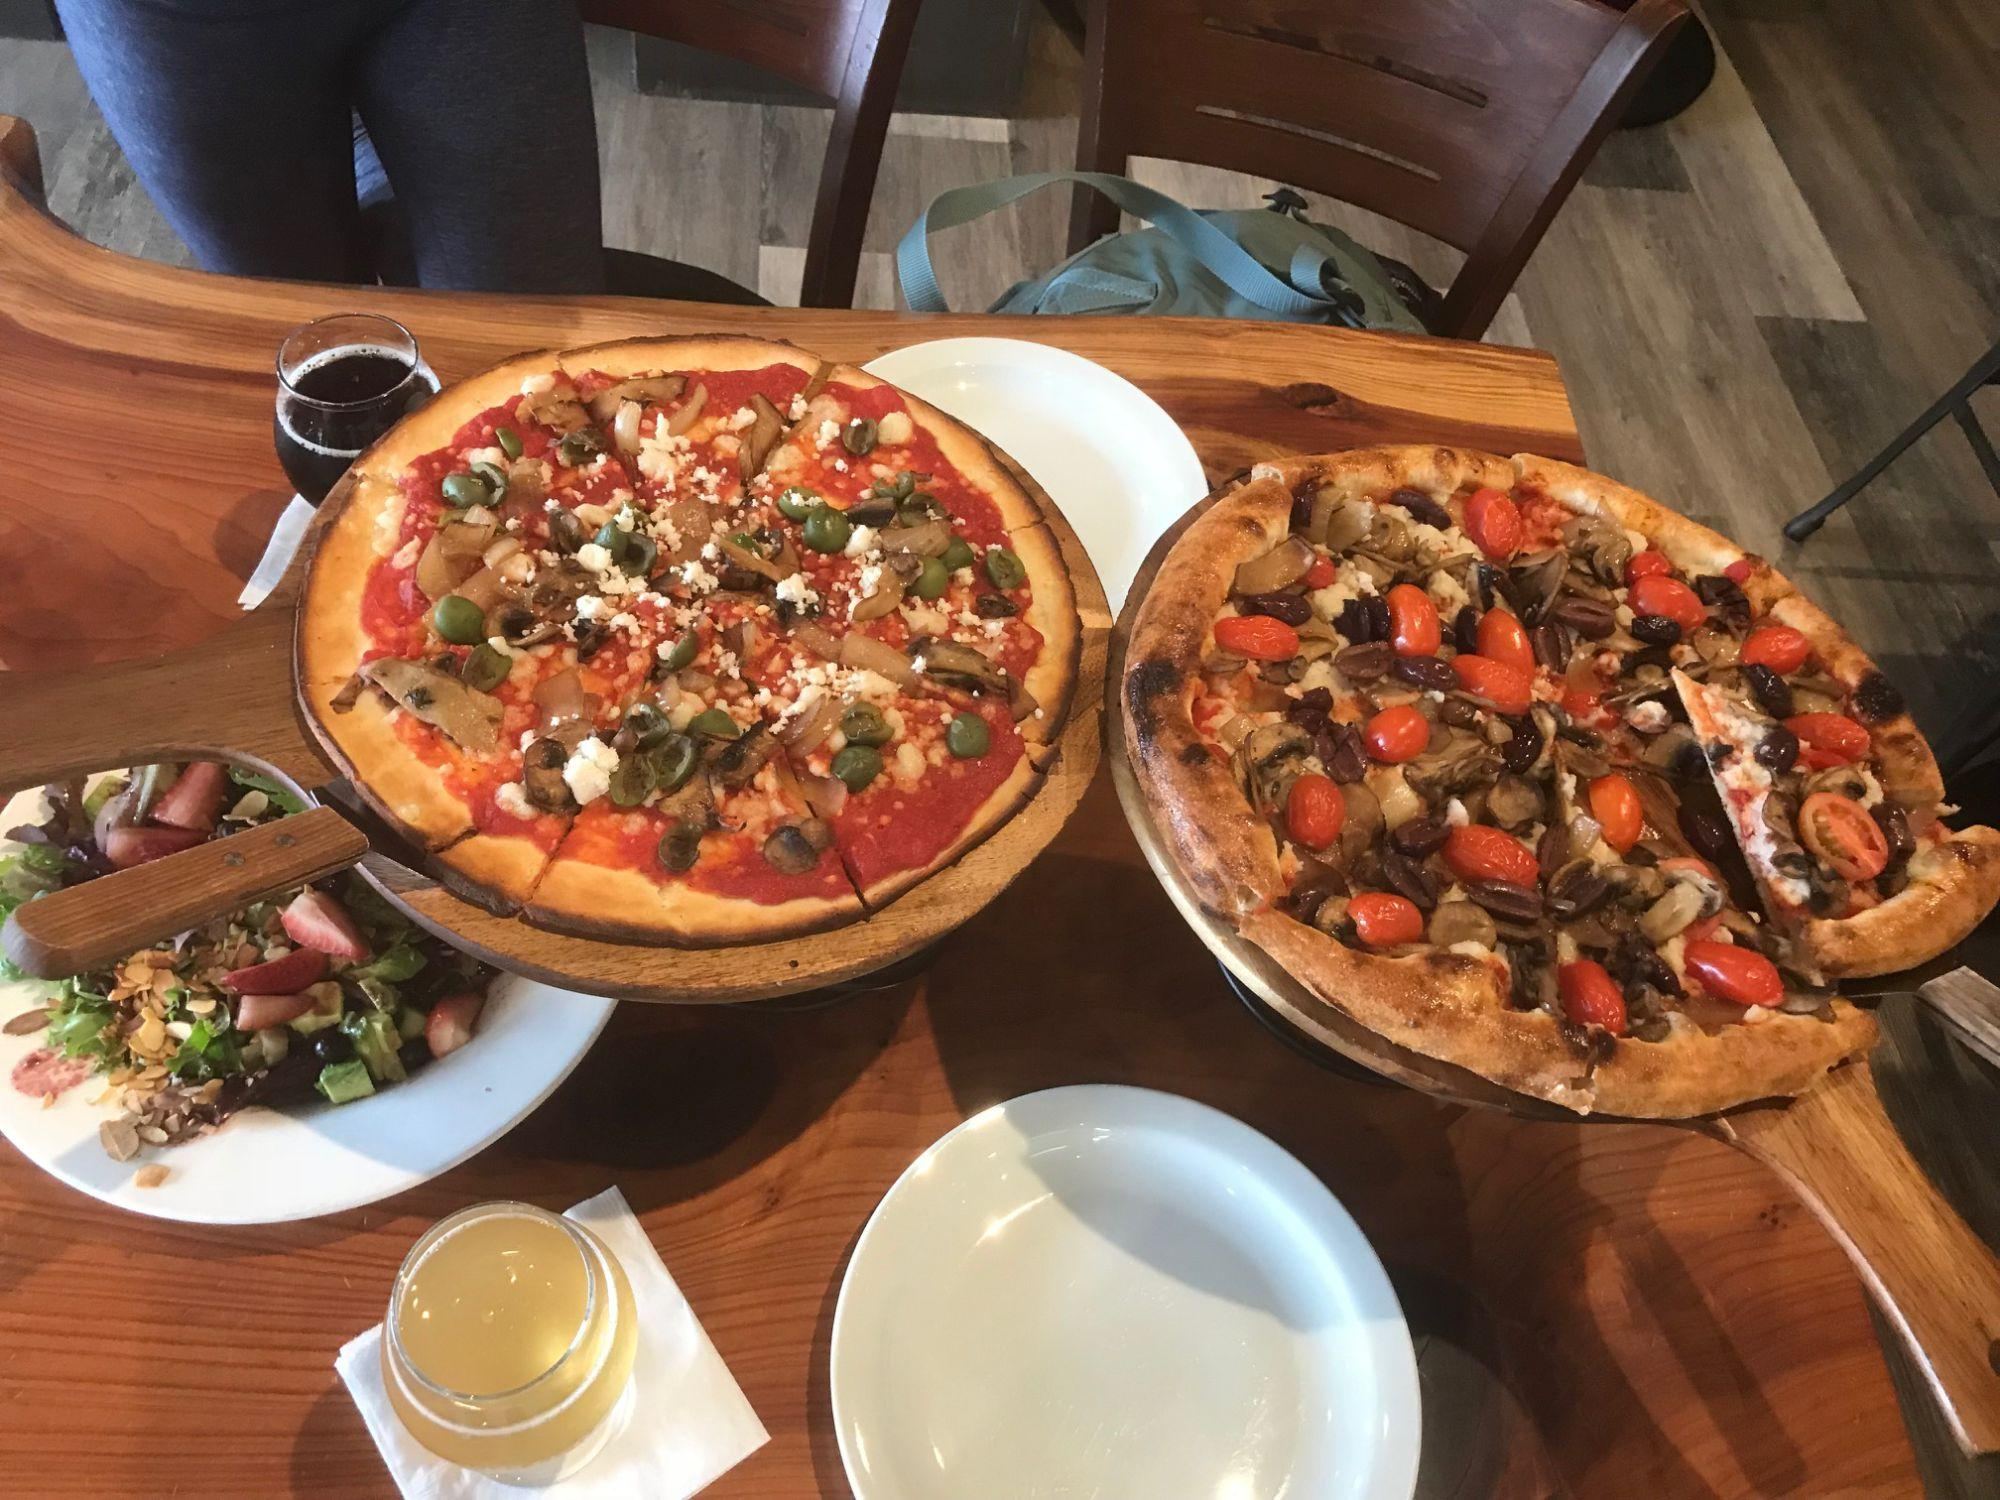 New pizza joint stands out among Marin competitors